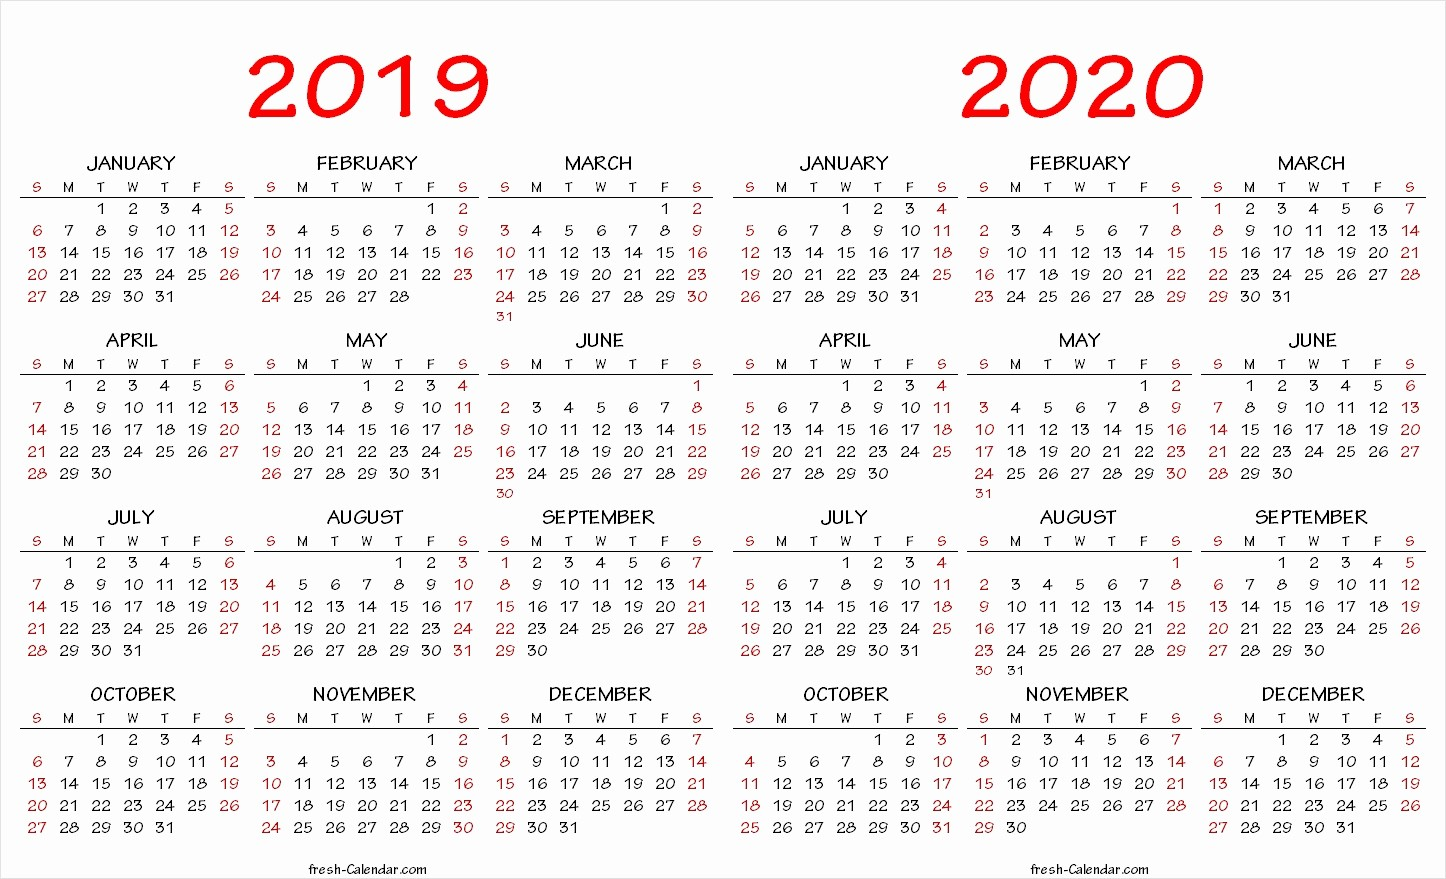 2019 and 2020 Calendar Printable Awesome 2019 2020 2021 3 Year Calendar Swifte